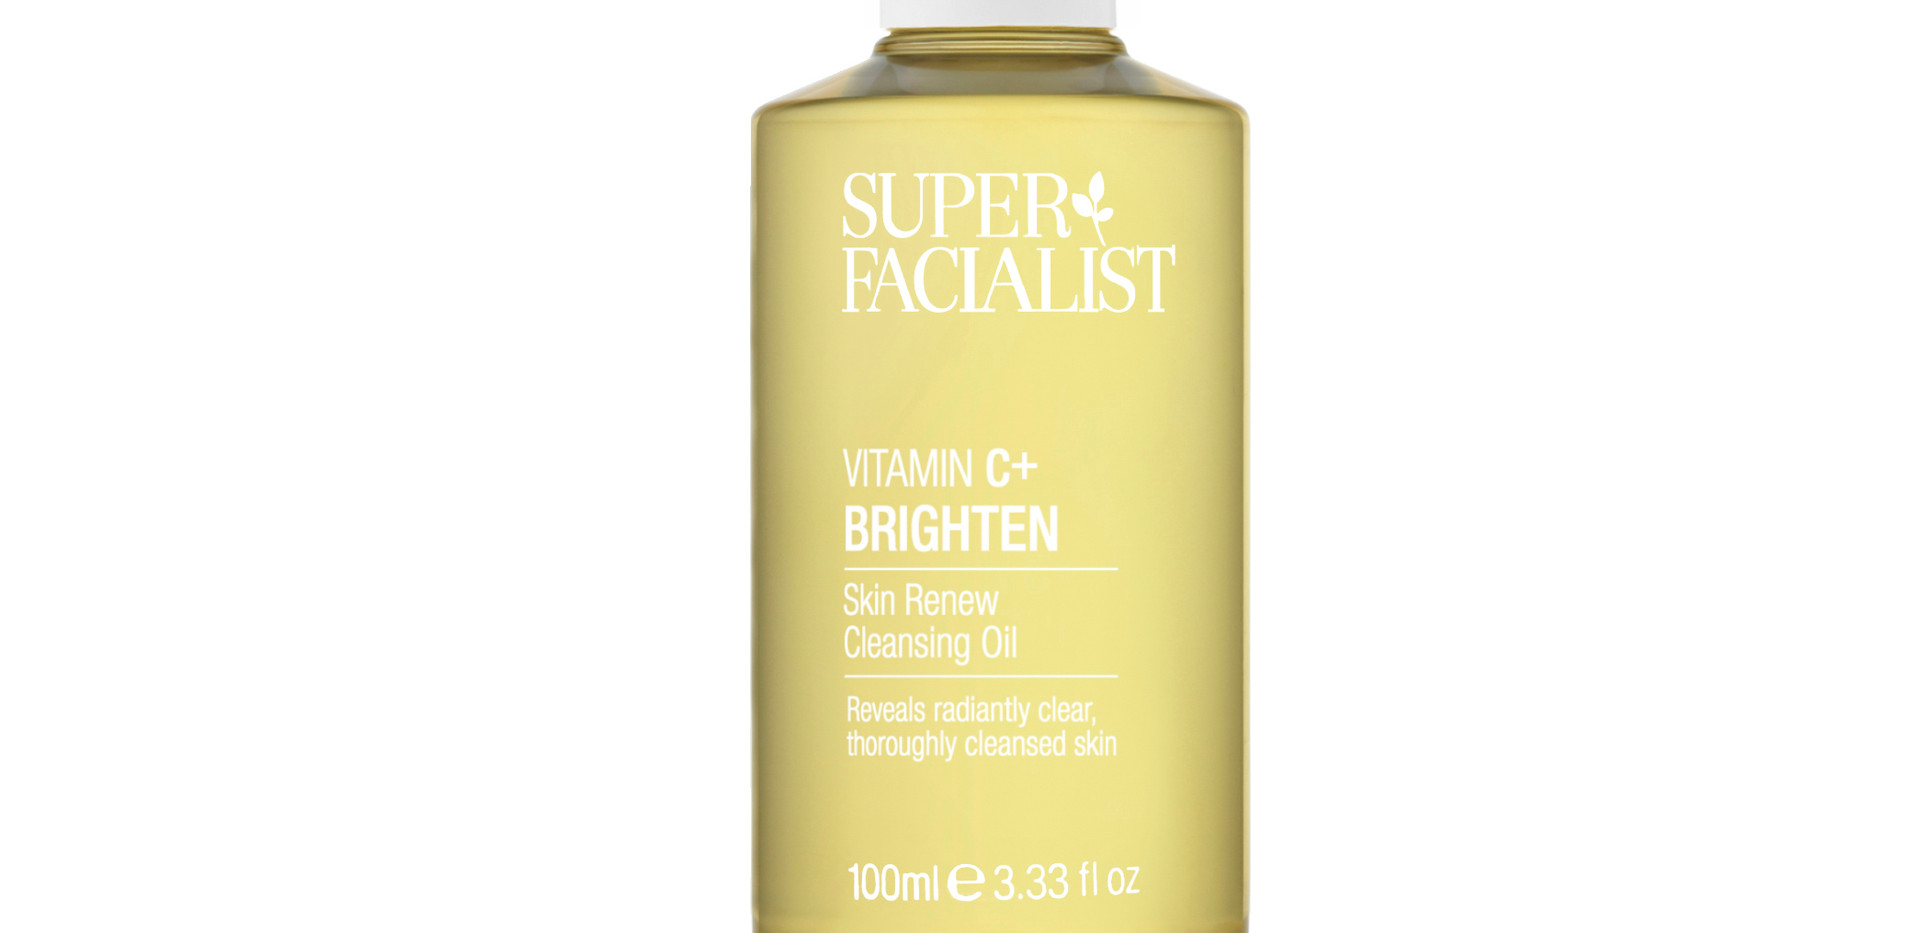 Super Facialist Vitamin C Skin Renew Cleansing Oil, 100ml. Travel Size, £5.50